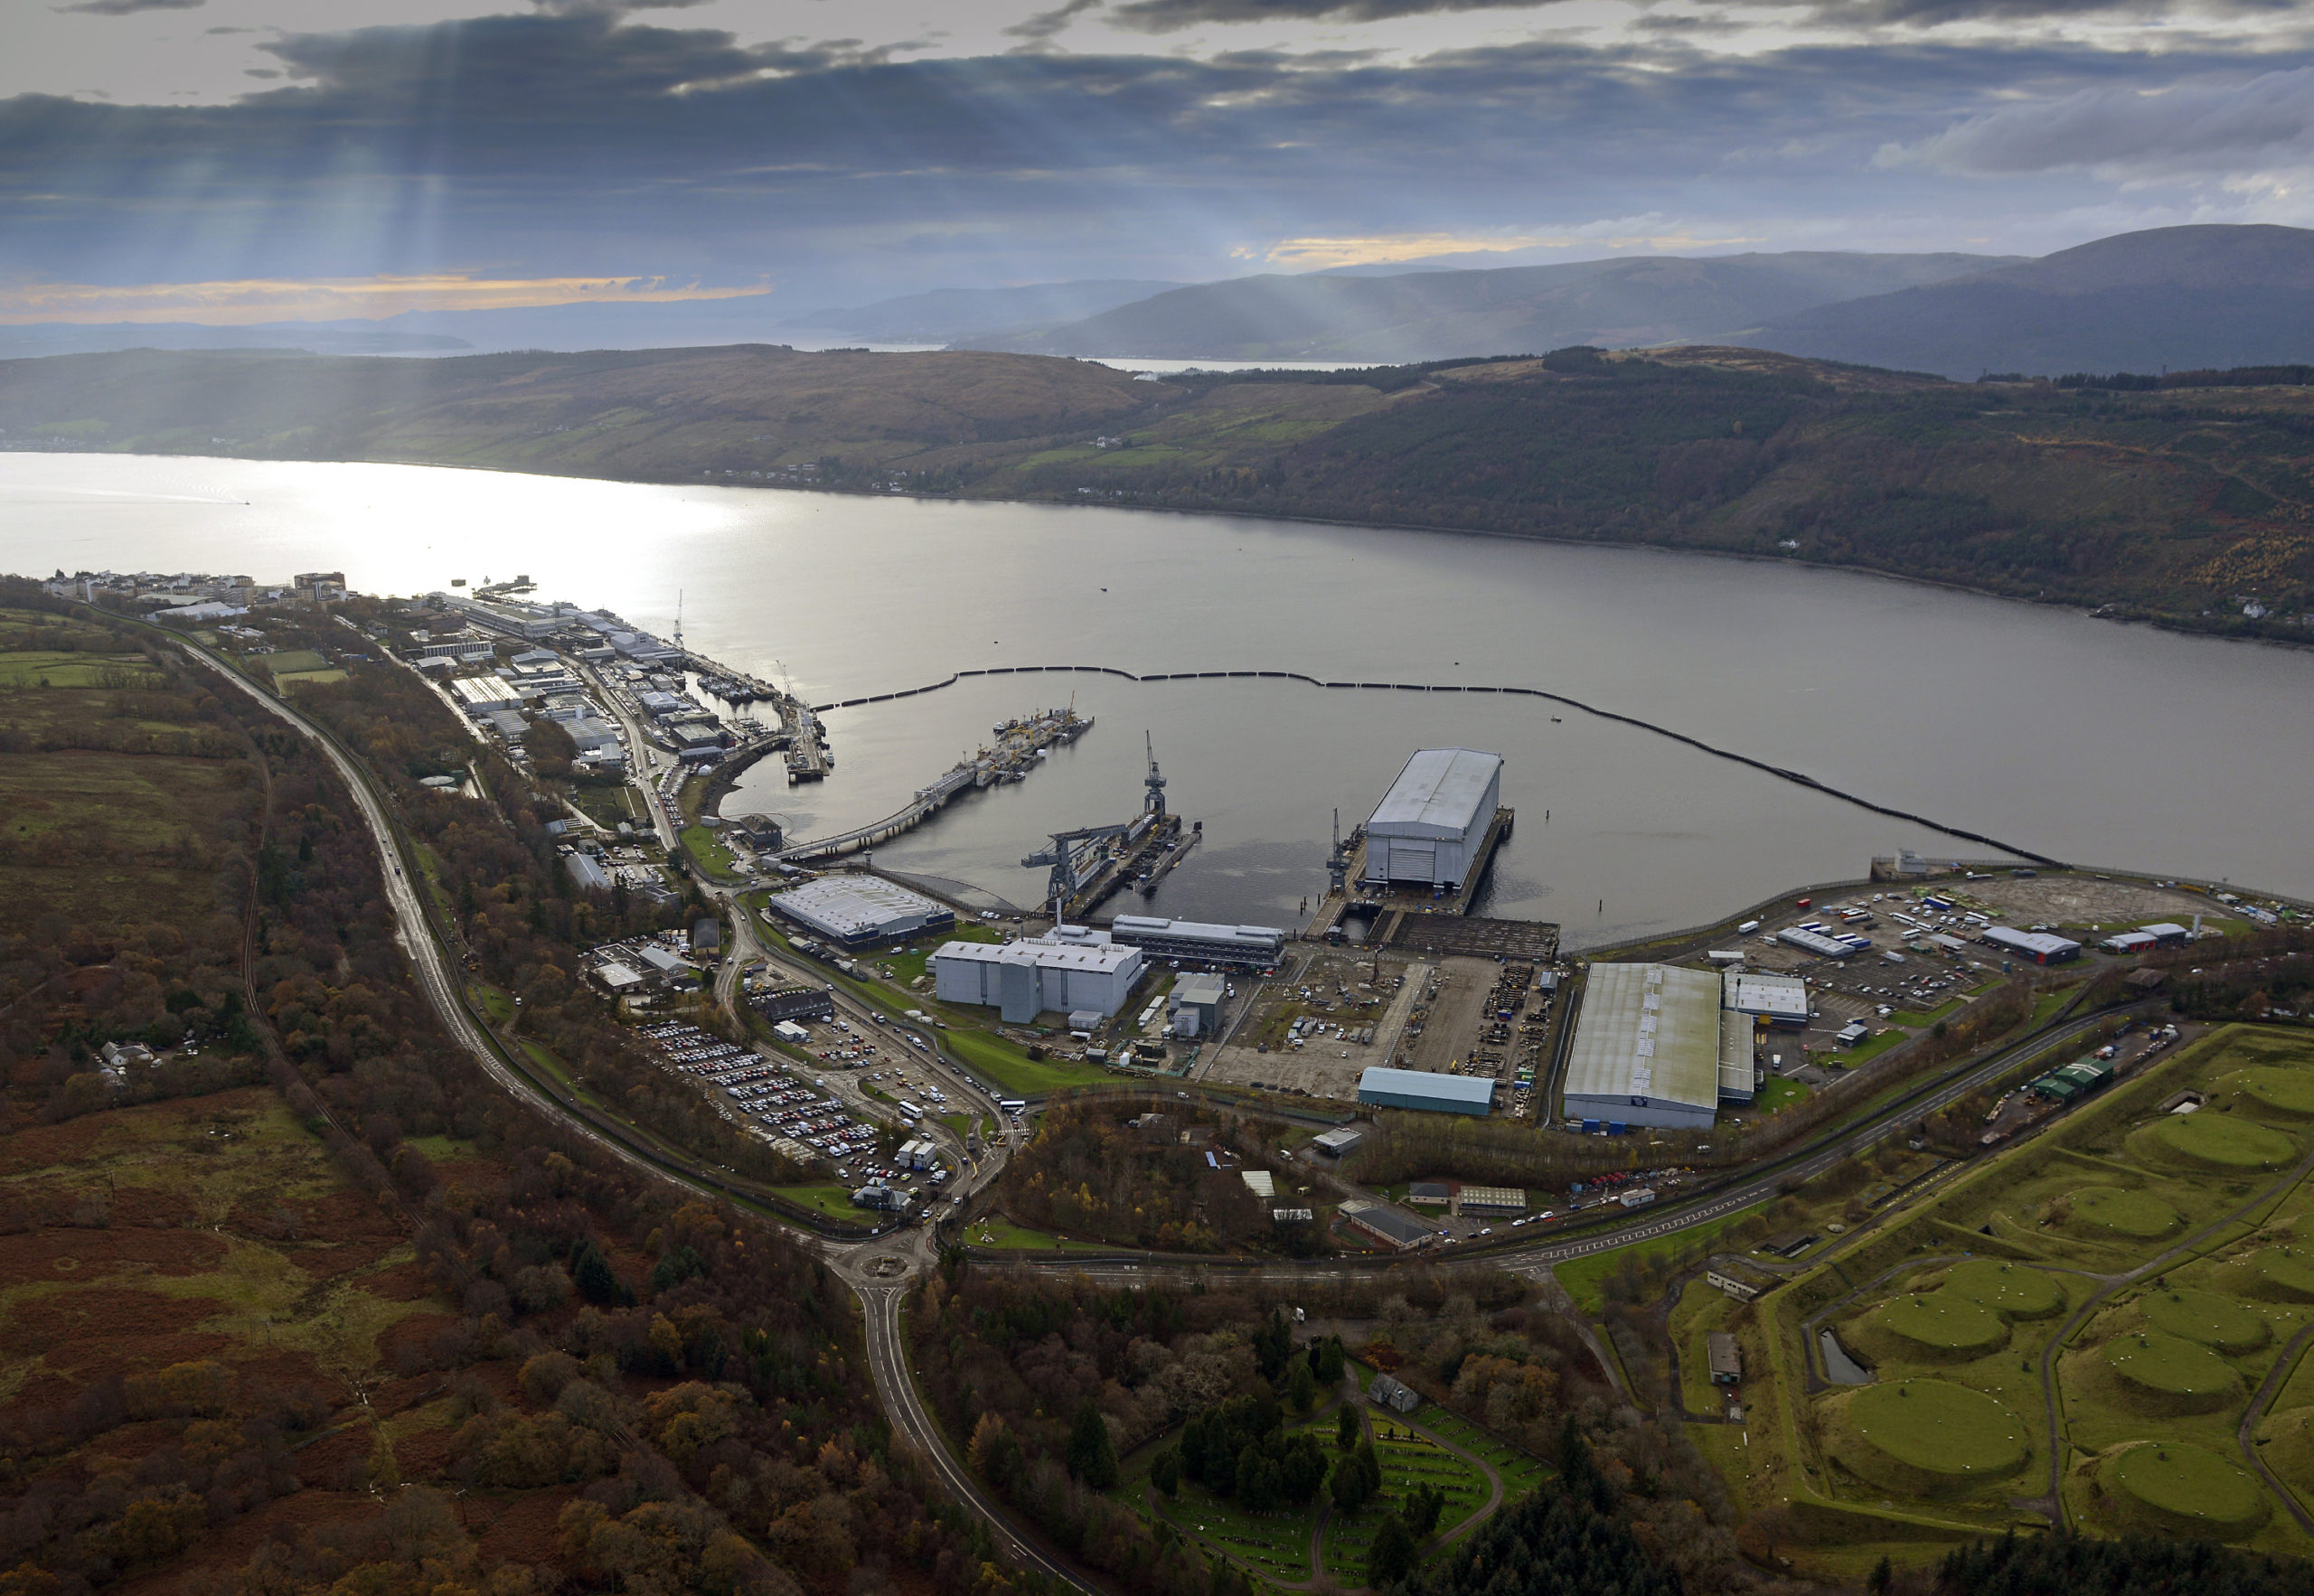 Dockyard Port of Clyde (Ministry of Defence)